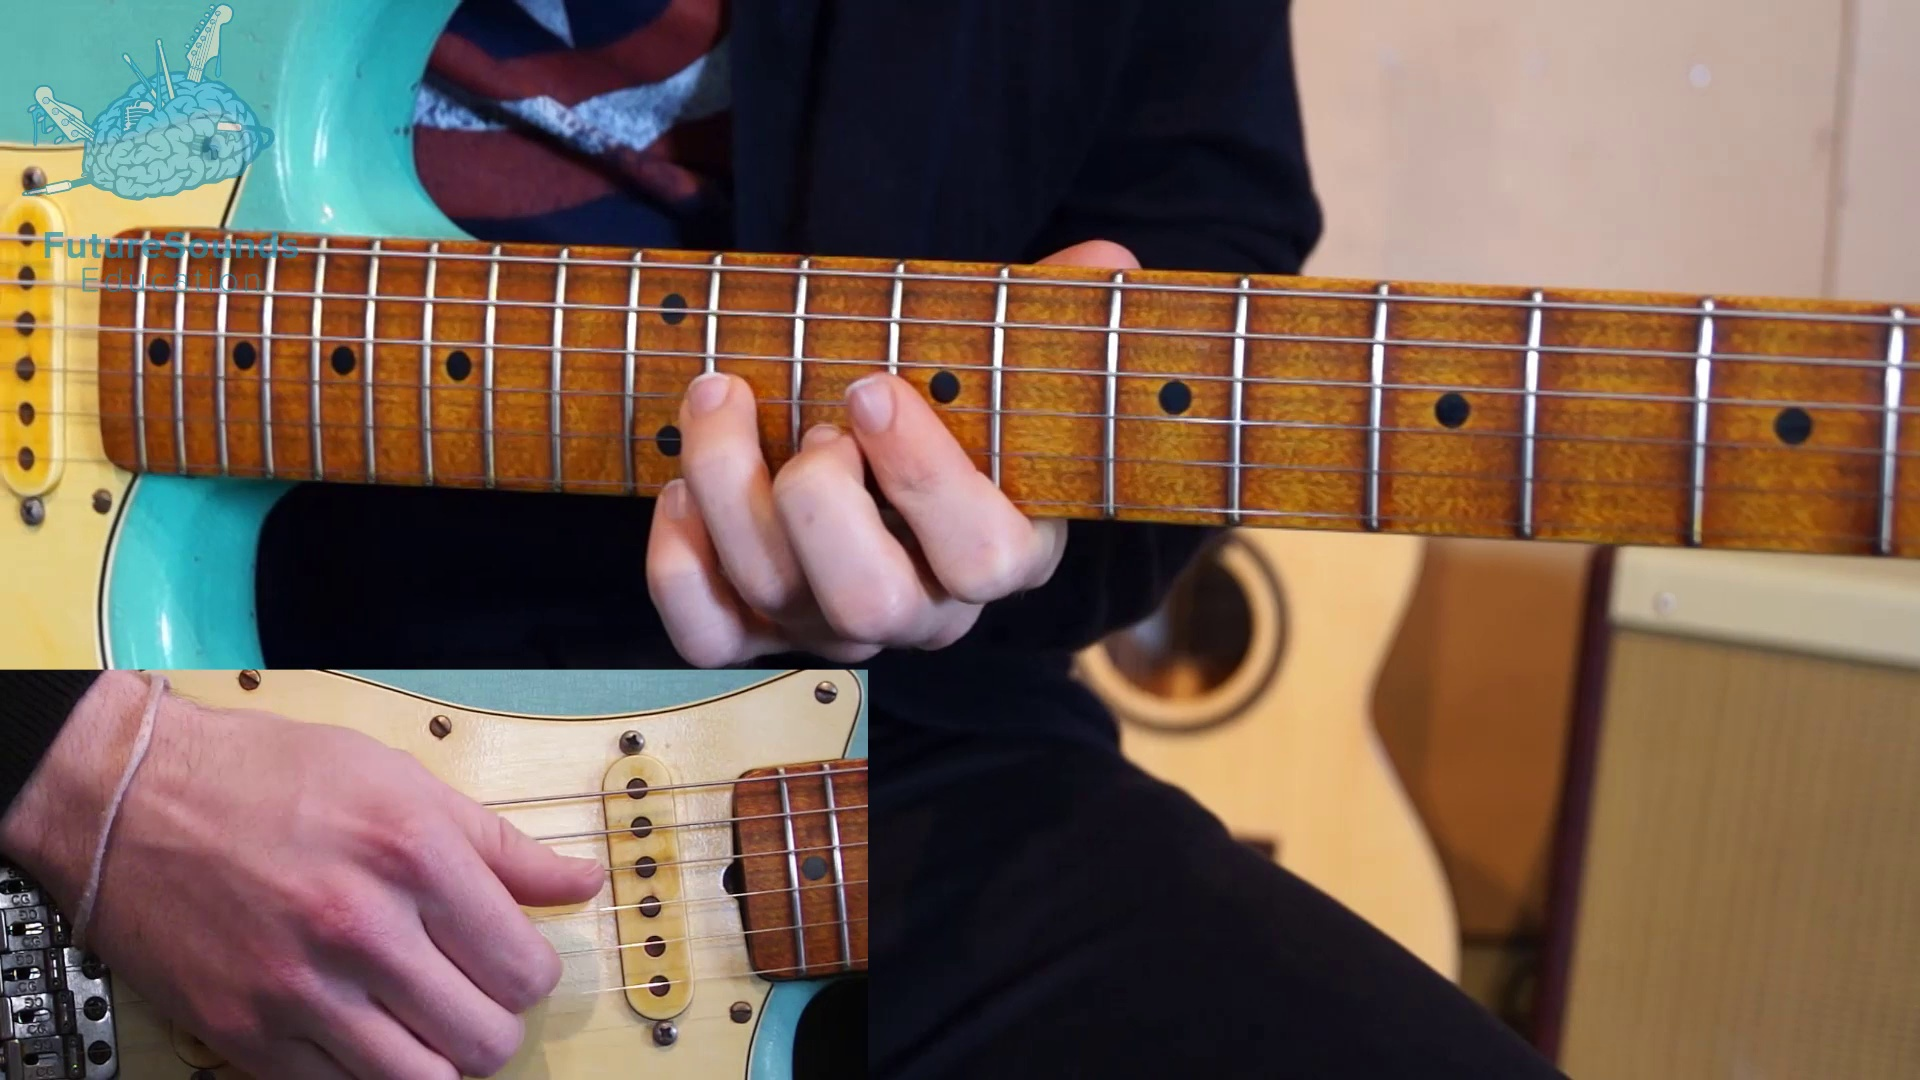 Paolo Nutini Scream (Funk Your Life Up) Guitar Tutorial